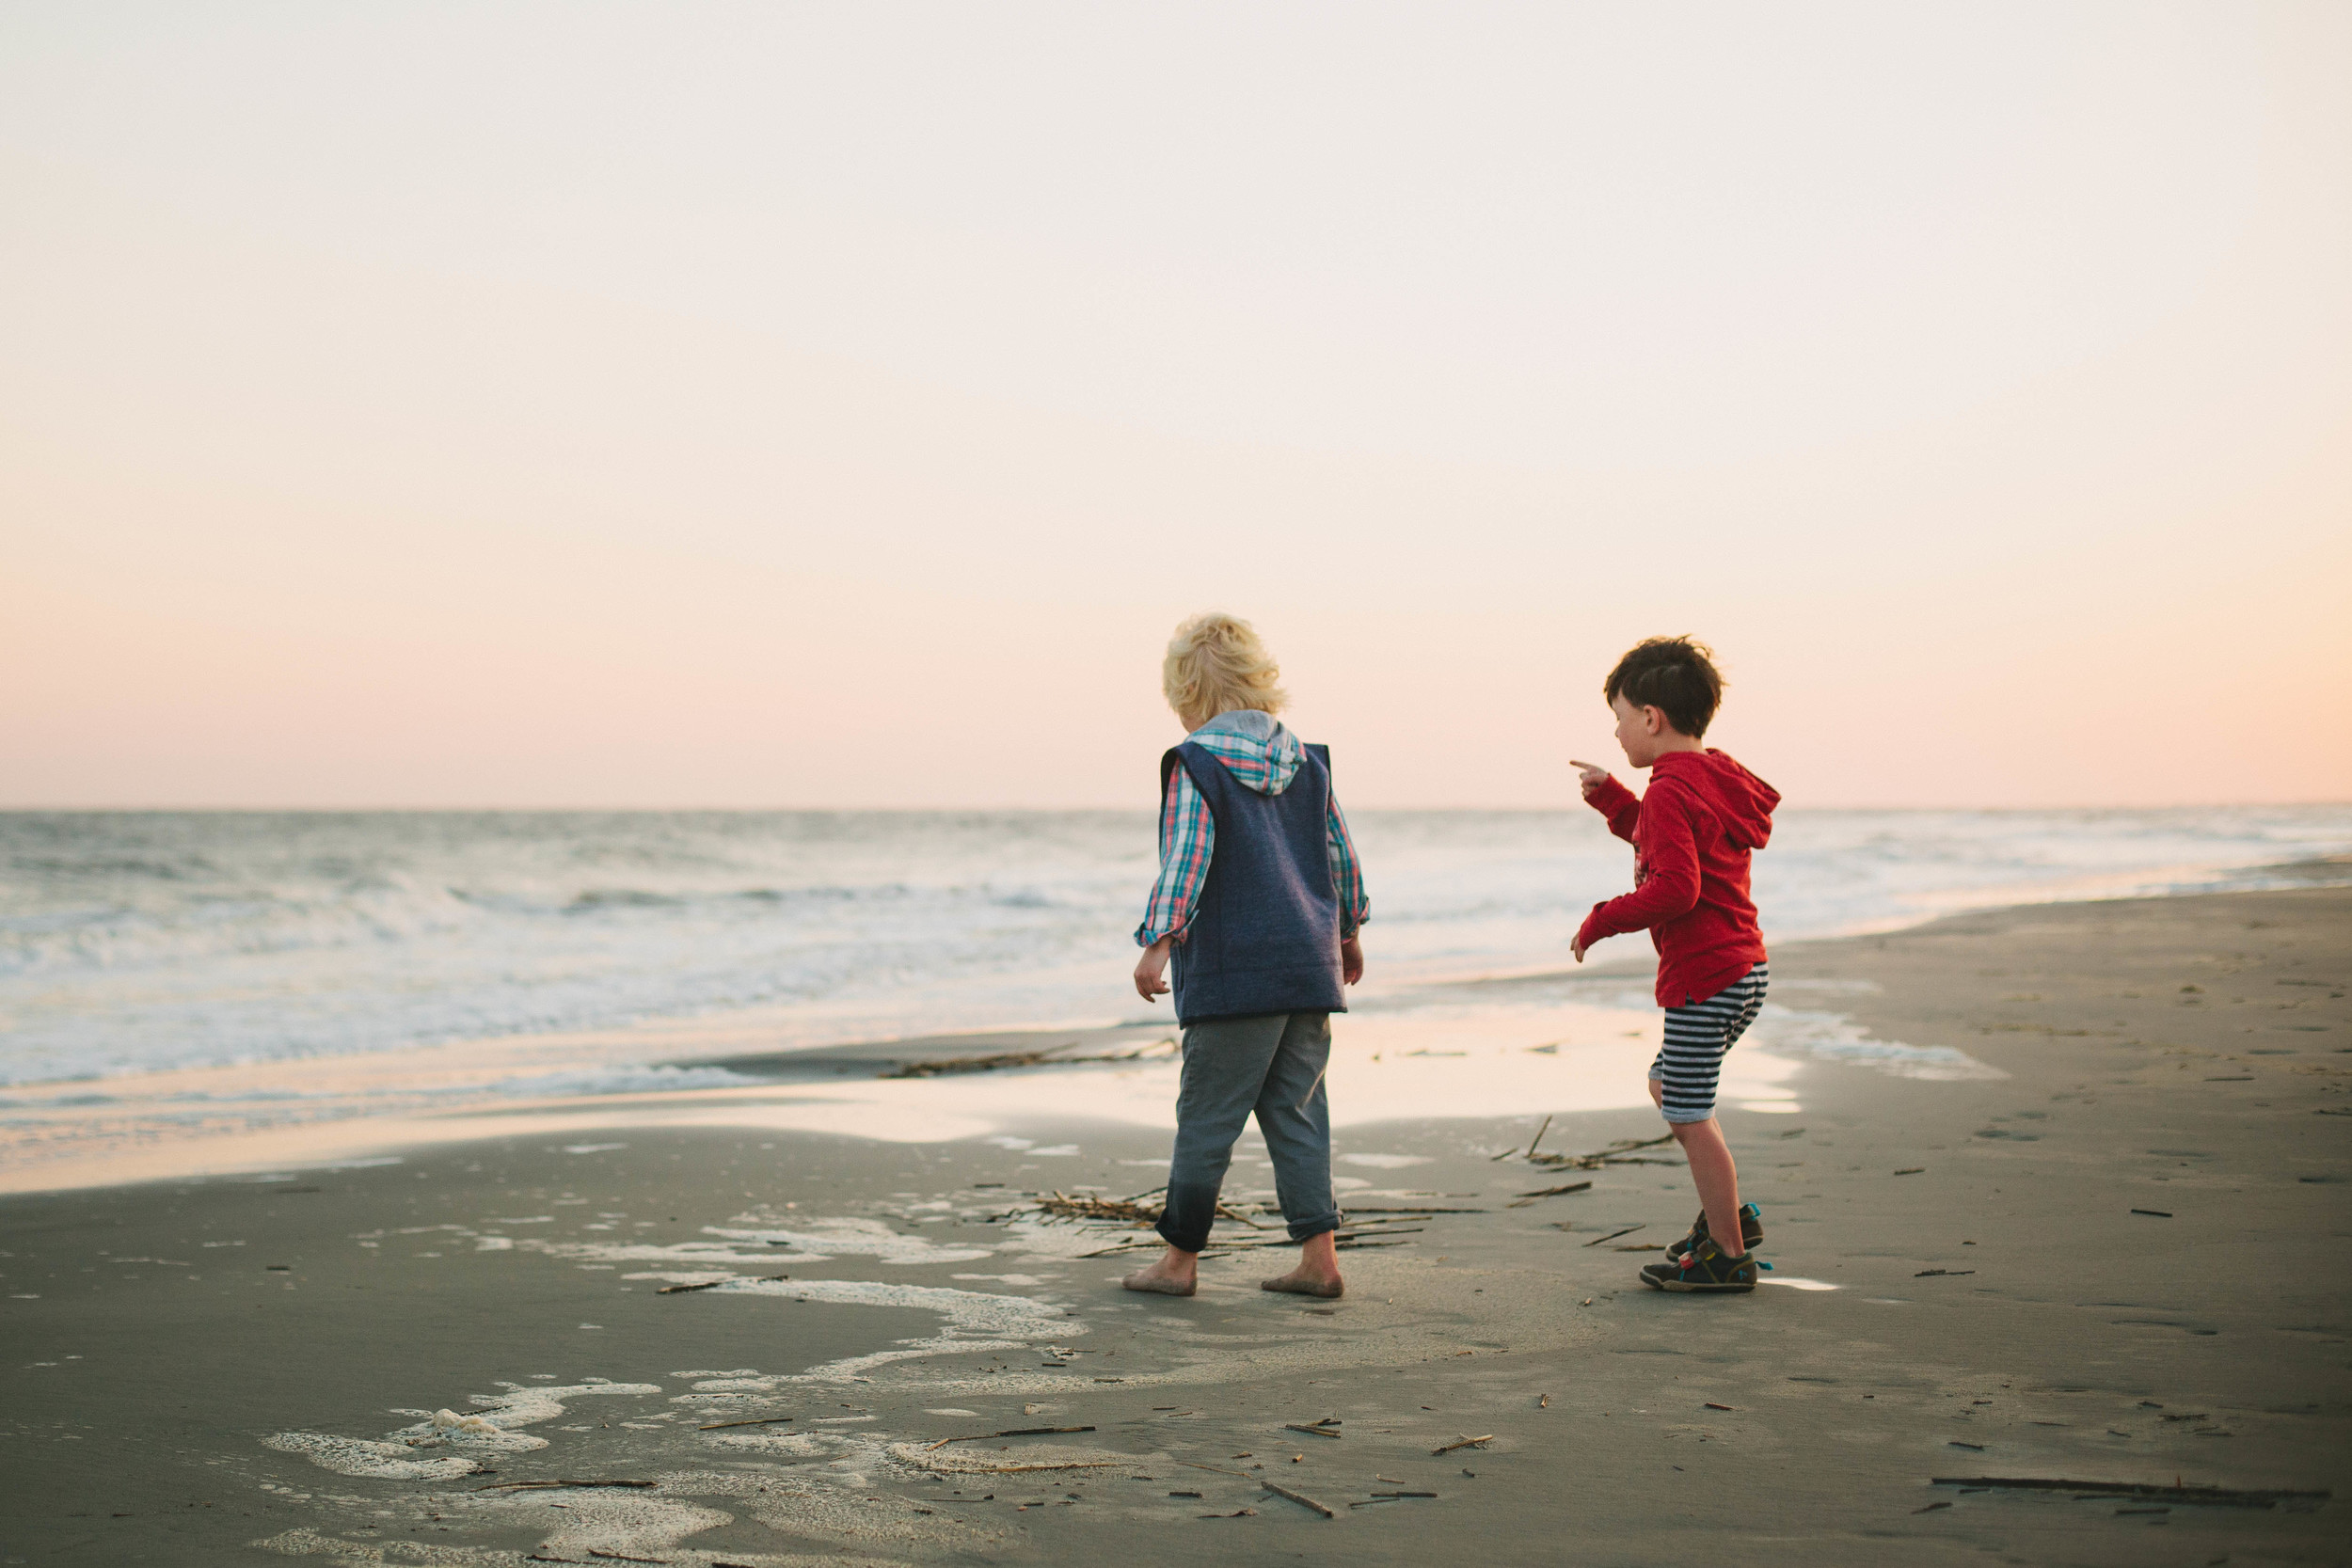 Image of two boys on the beach during sunset